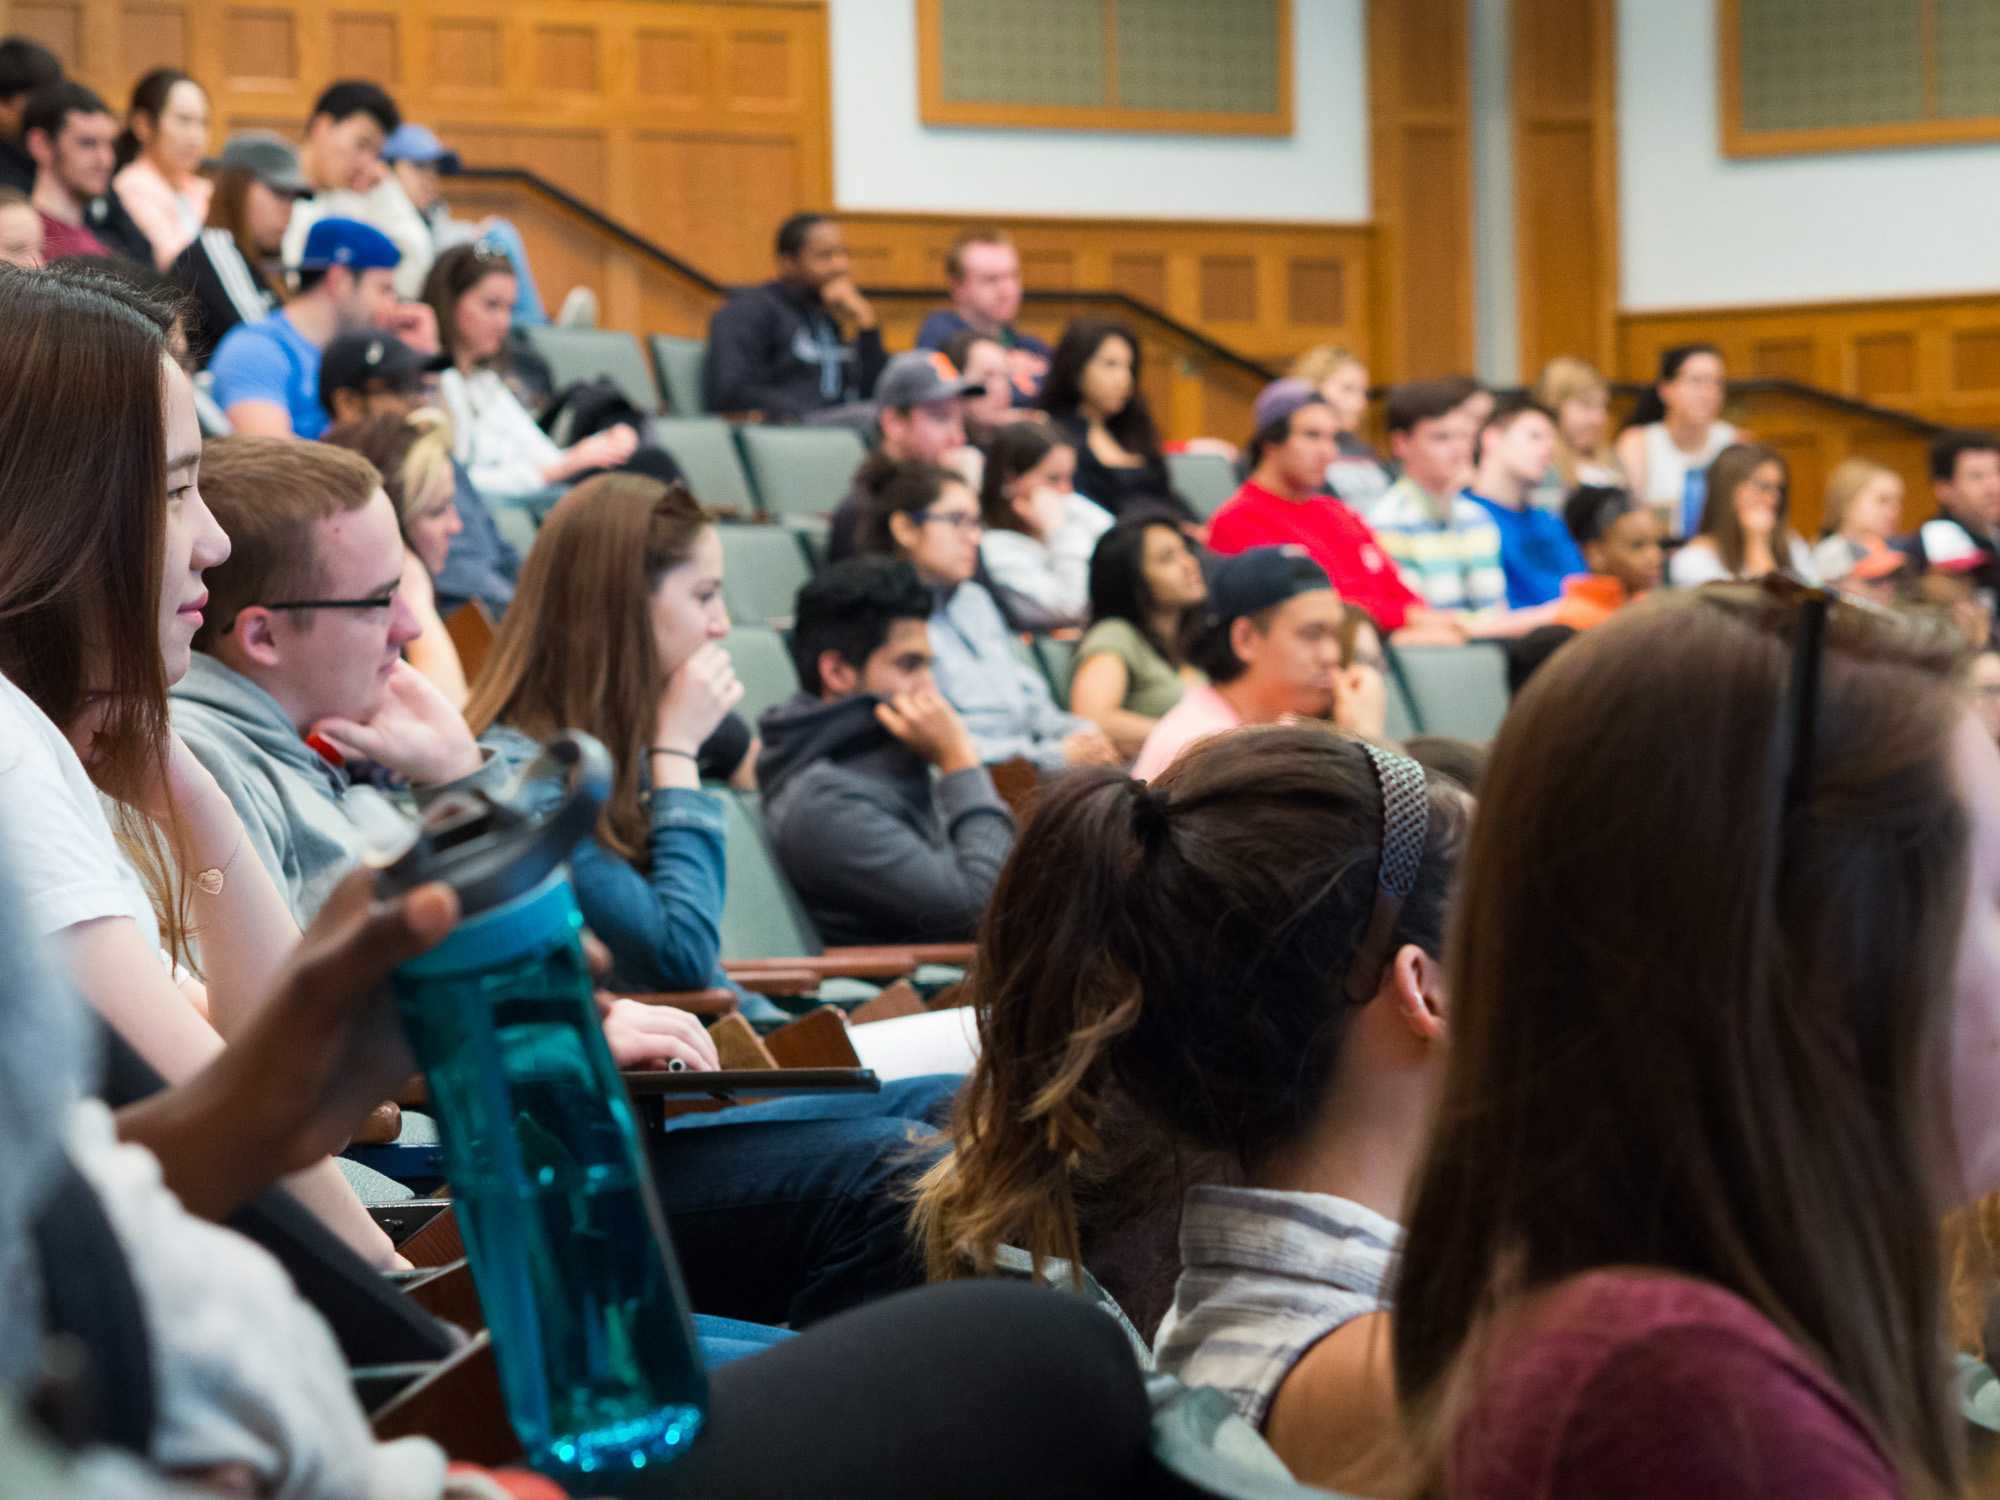 Students are engaged in Professor Lena Hann's last lecture at UIUC. Tuesday, May 3.